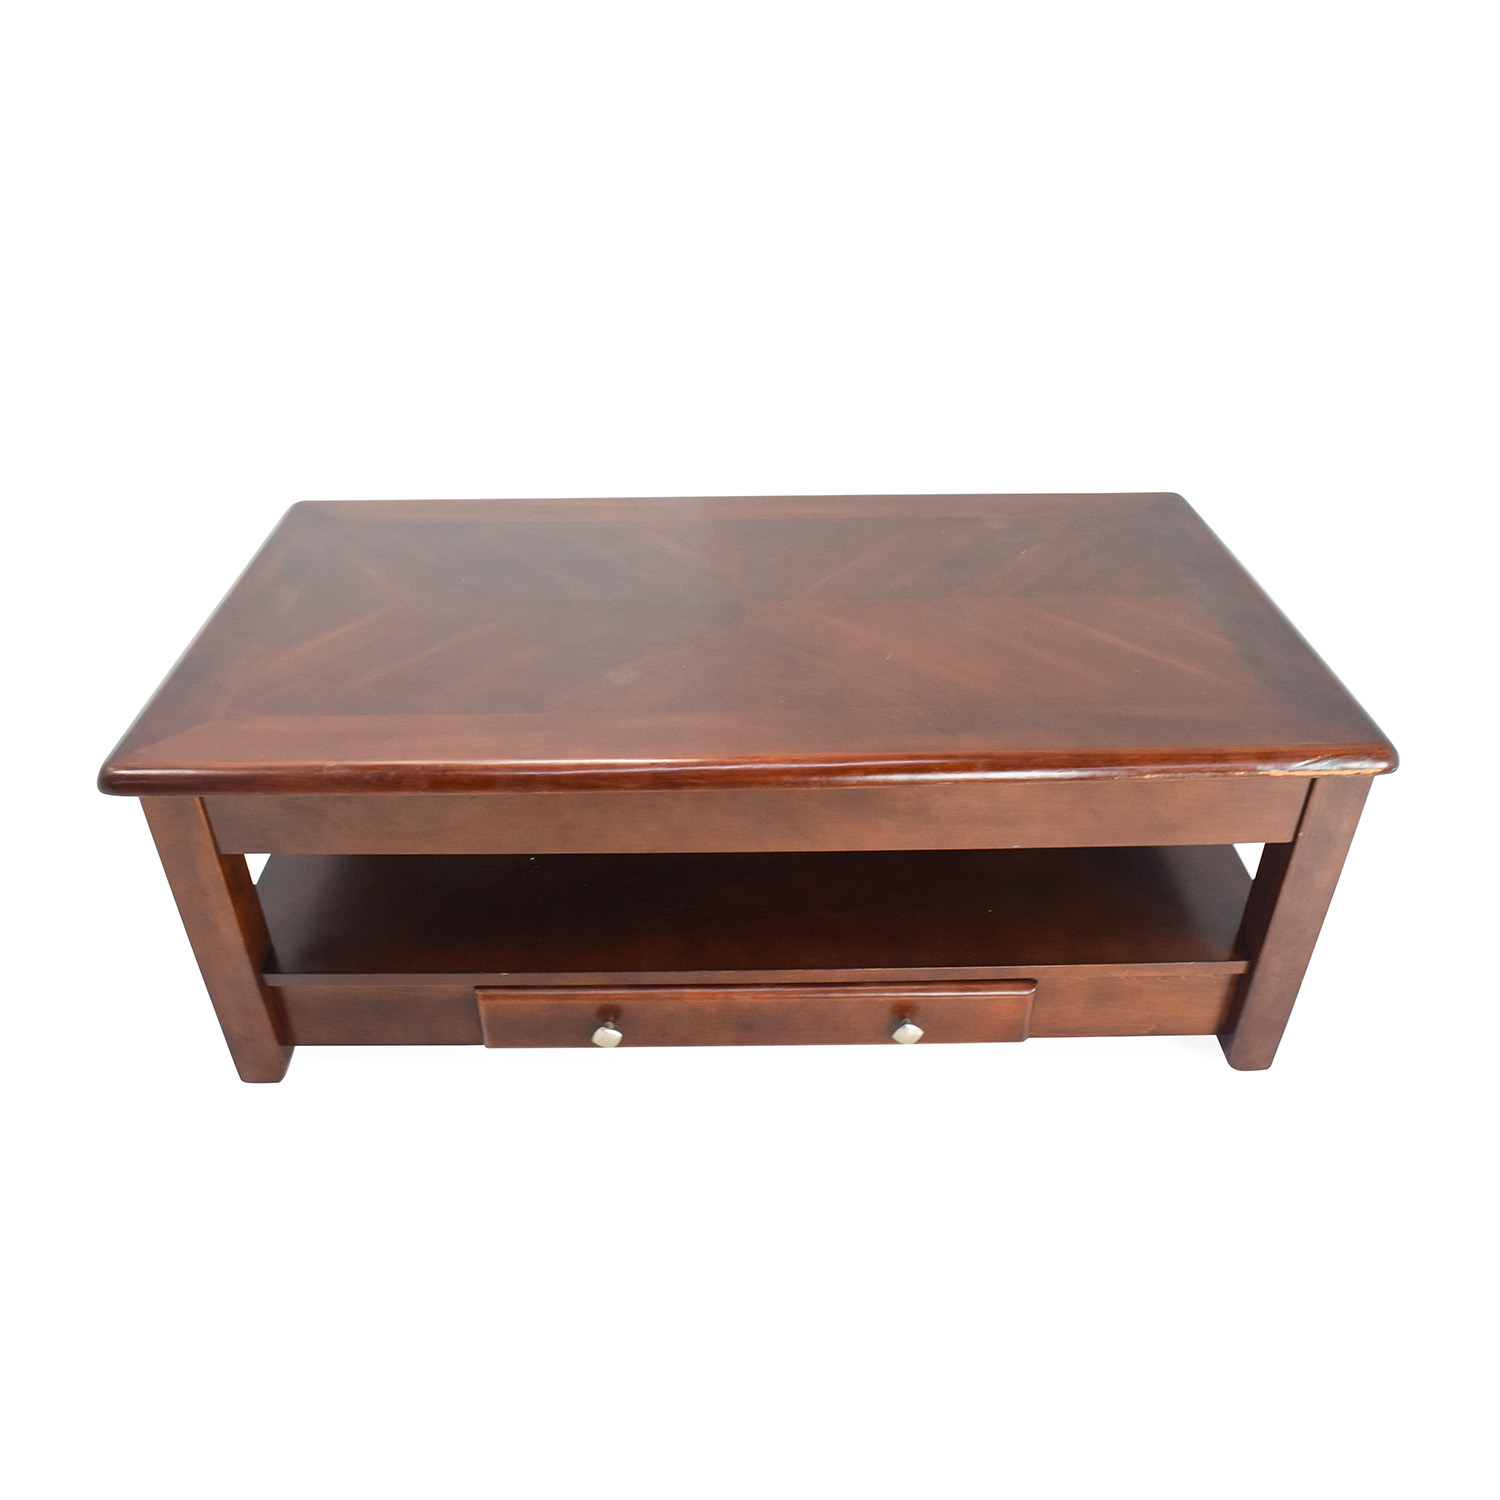 Raymour and Flanigan Raymour & Flanigan Lift-Top Coffe Table in Cherry second hand